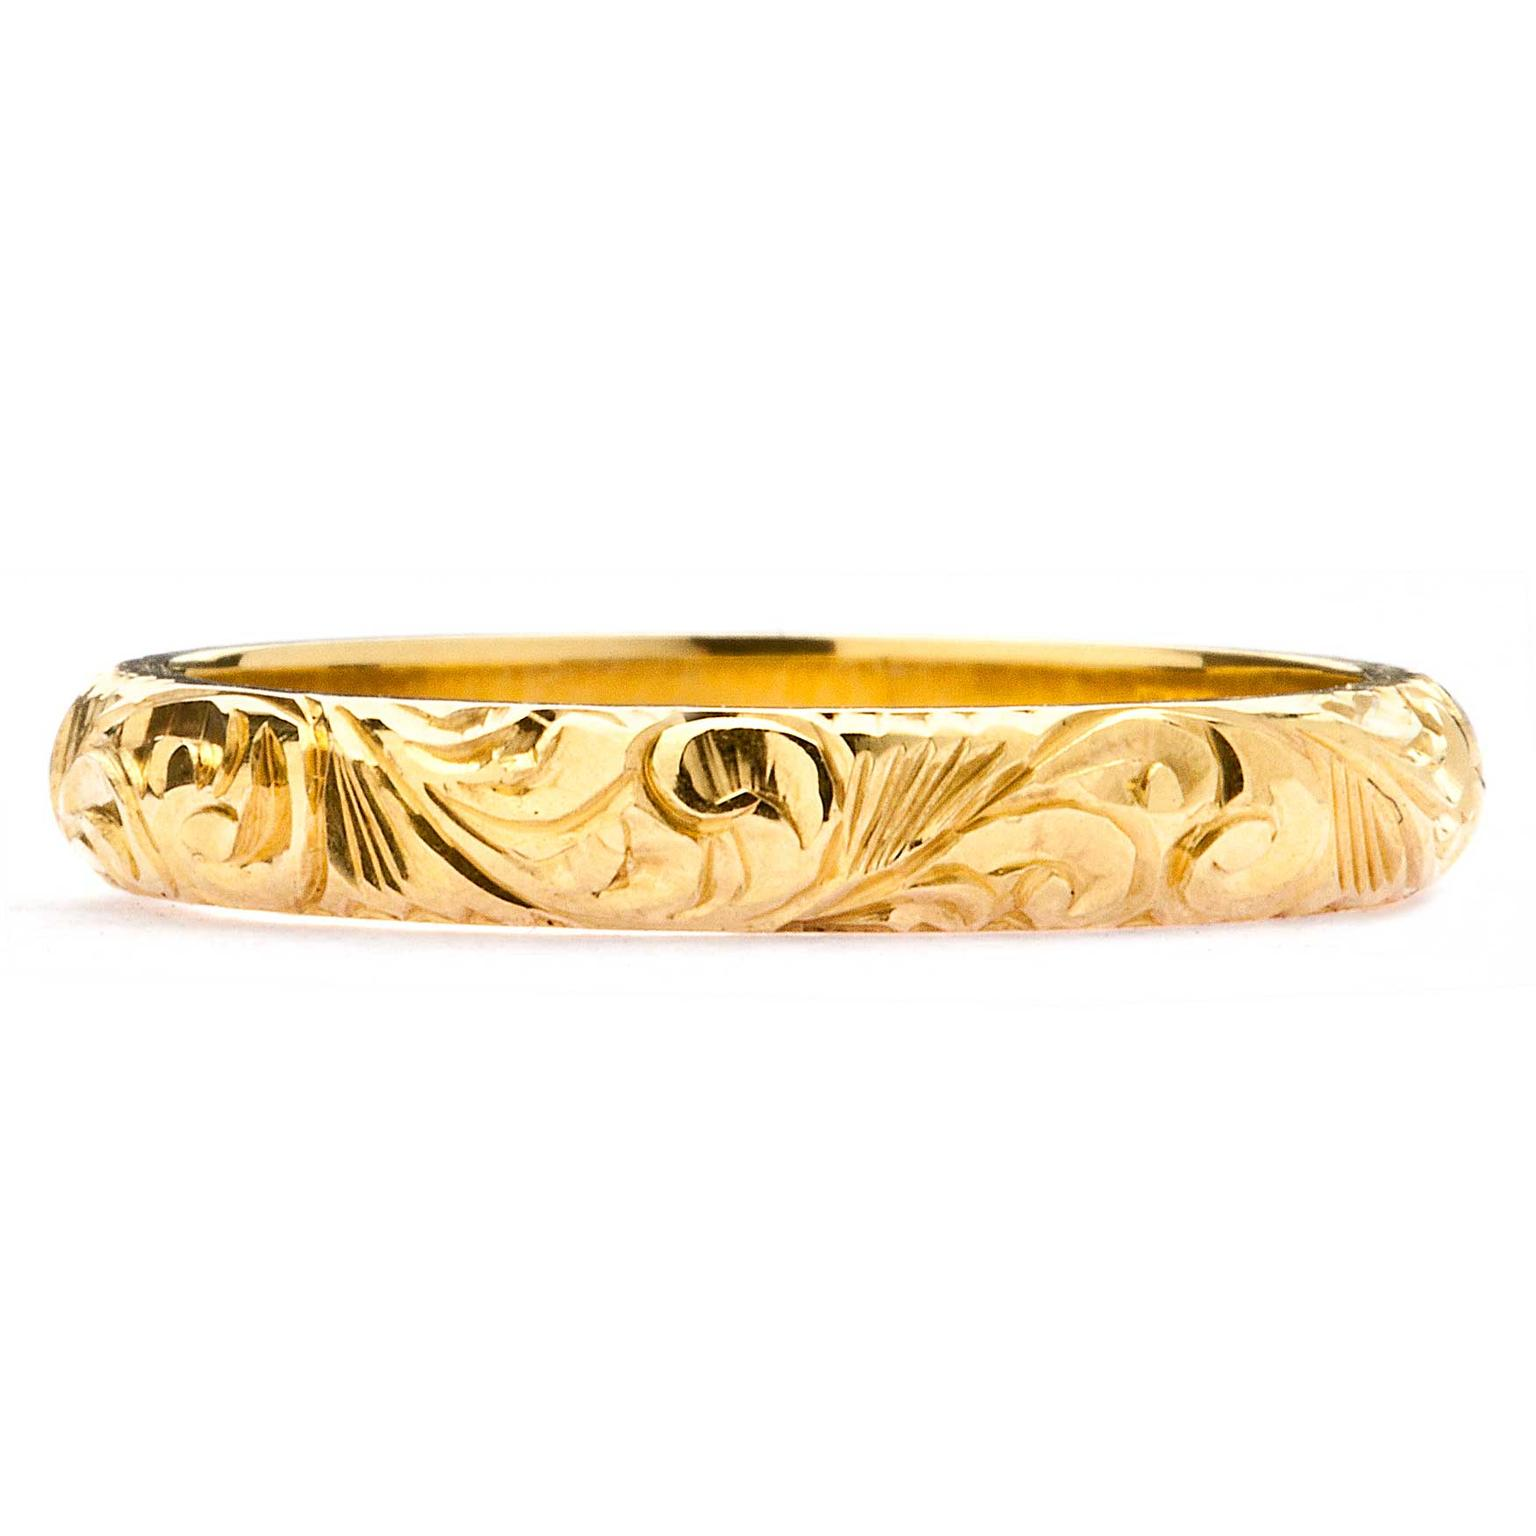 Arabel Lebrusan Scrolls ethical gold wedding ring